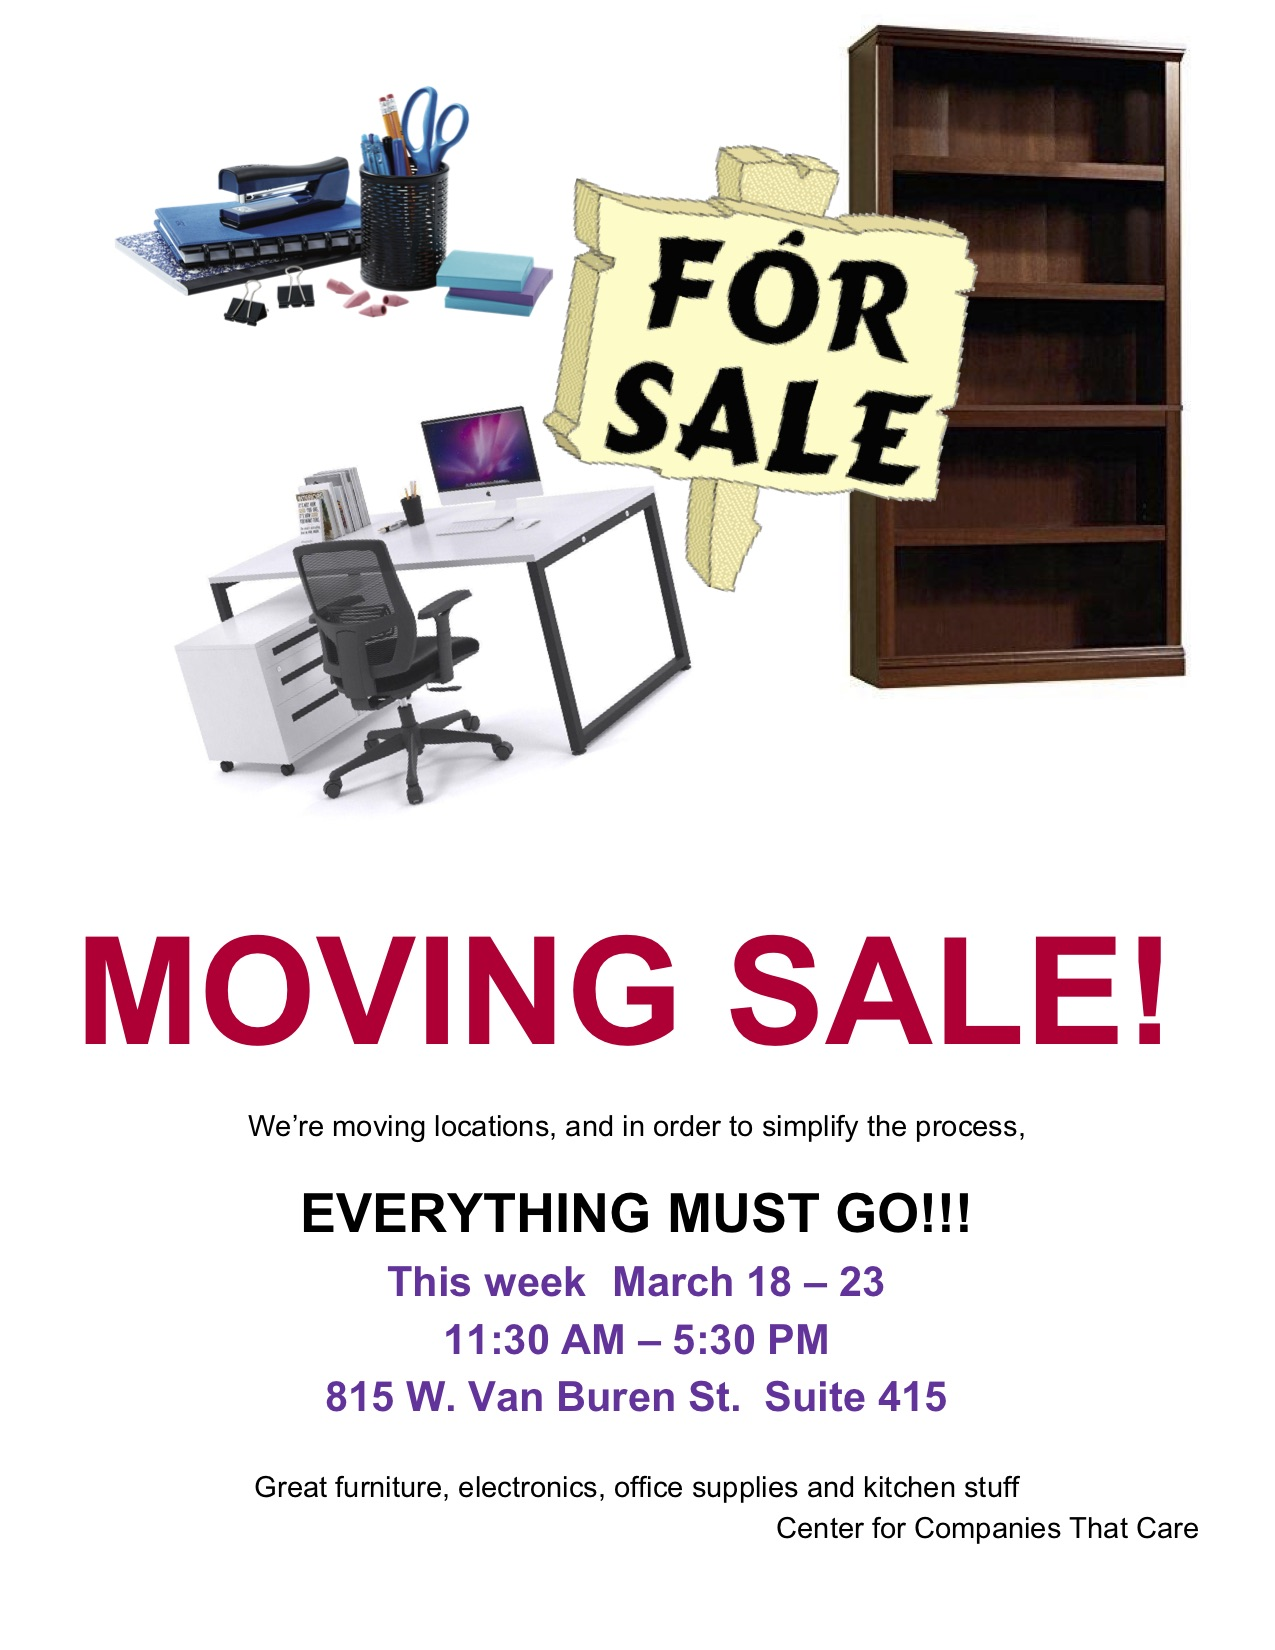 Moving Sale Flyer 1